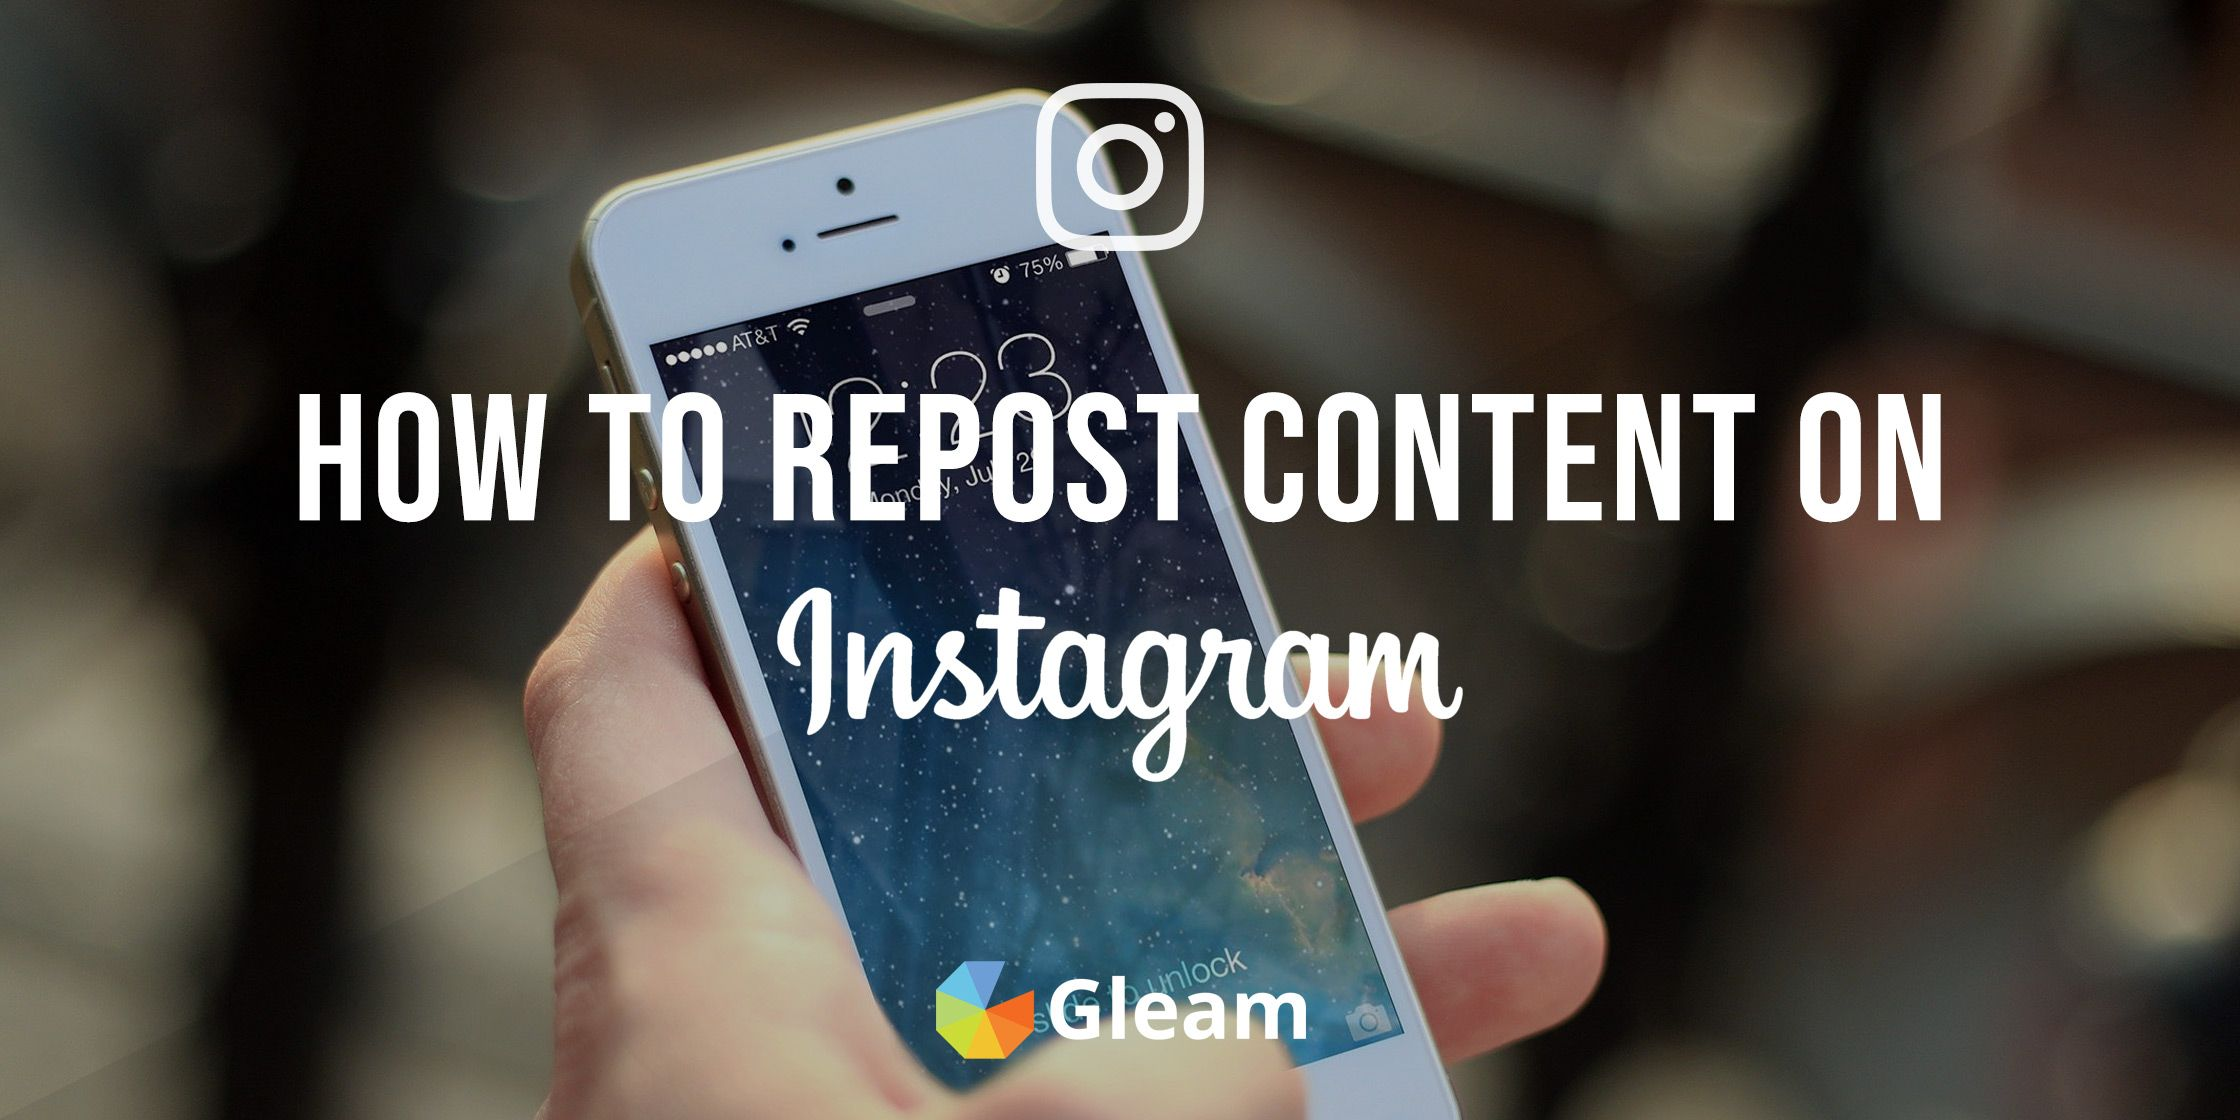 How to Repost Pictures on Instagram